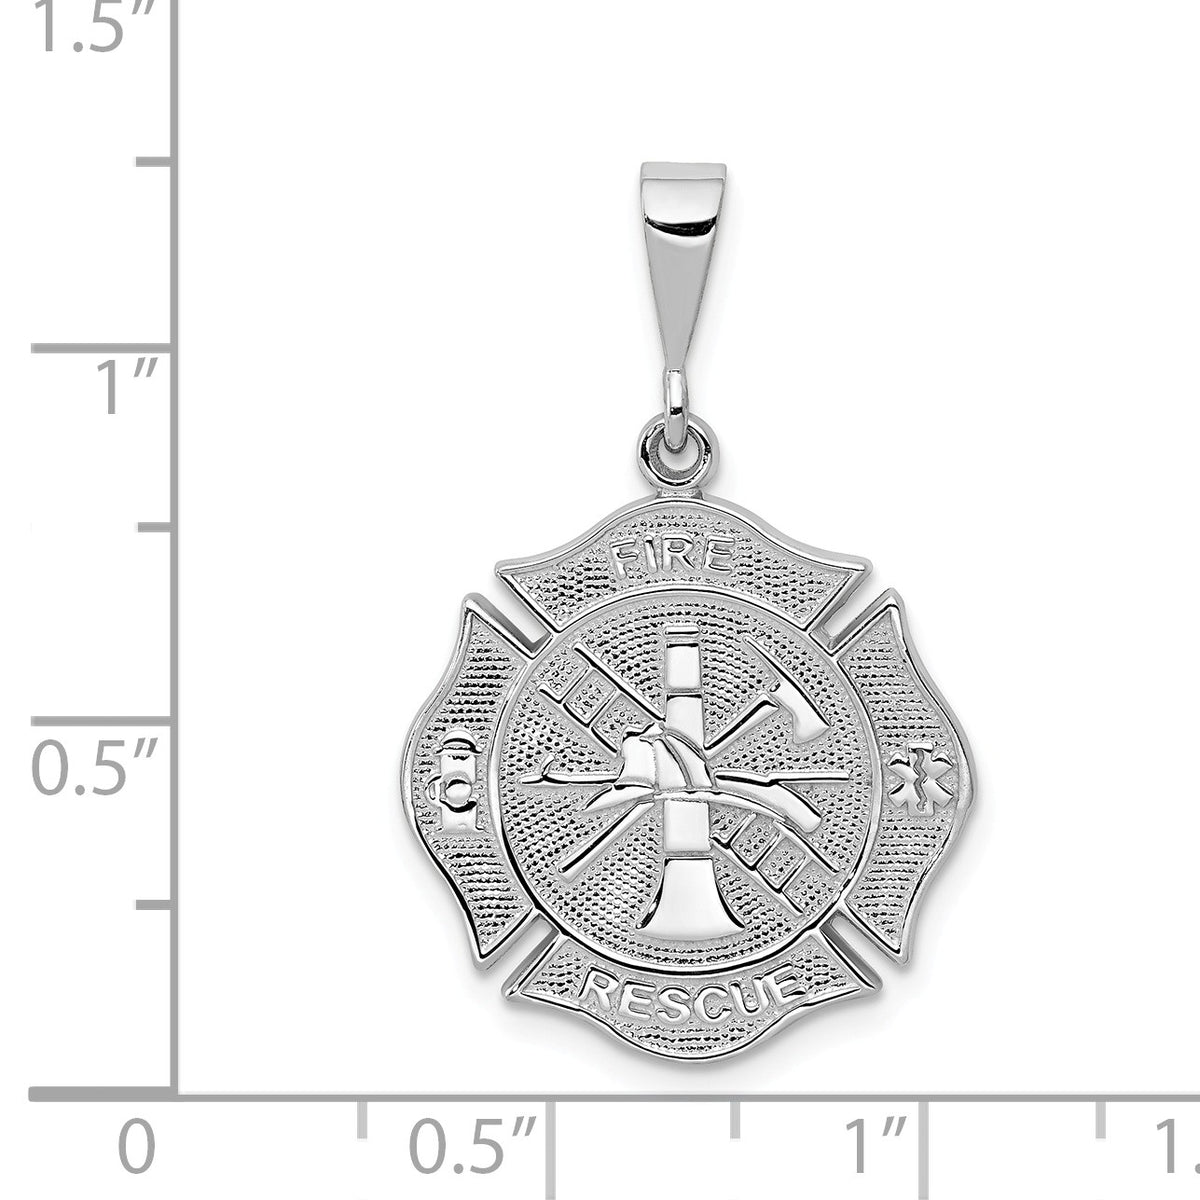 Alternate view of the 14k White Gold Textured Fire Rescue Shield Pendant by The Black Bow Jewelry Co.